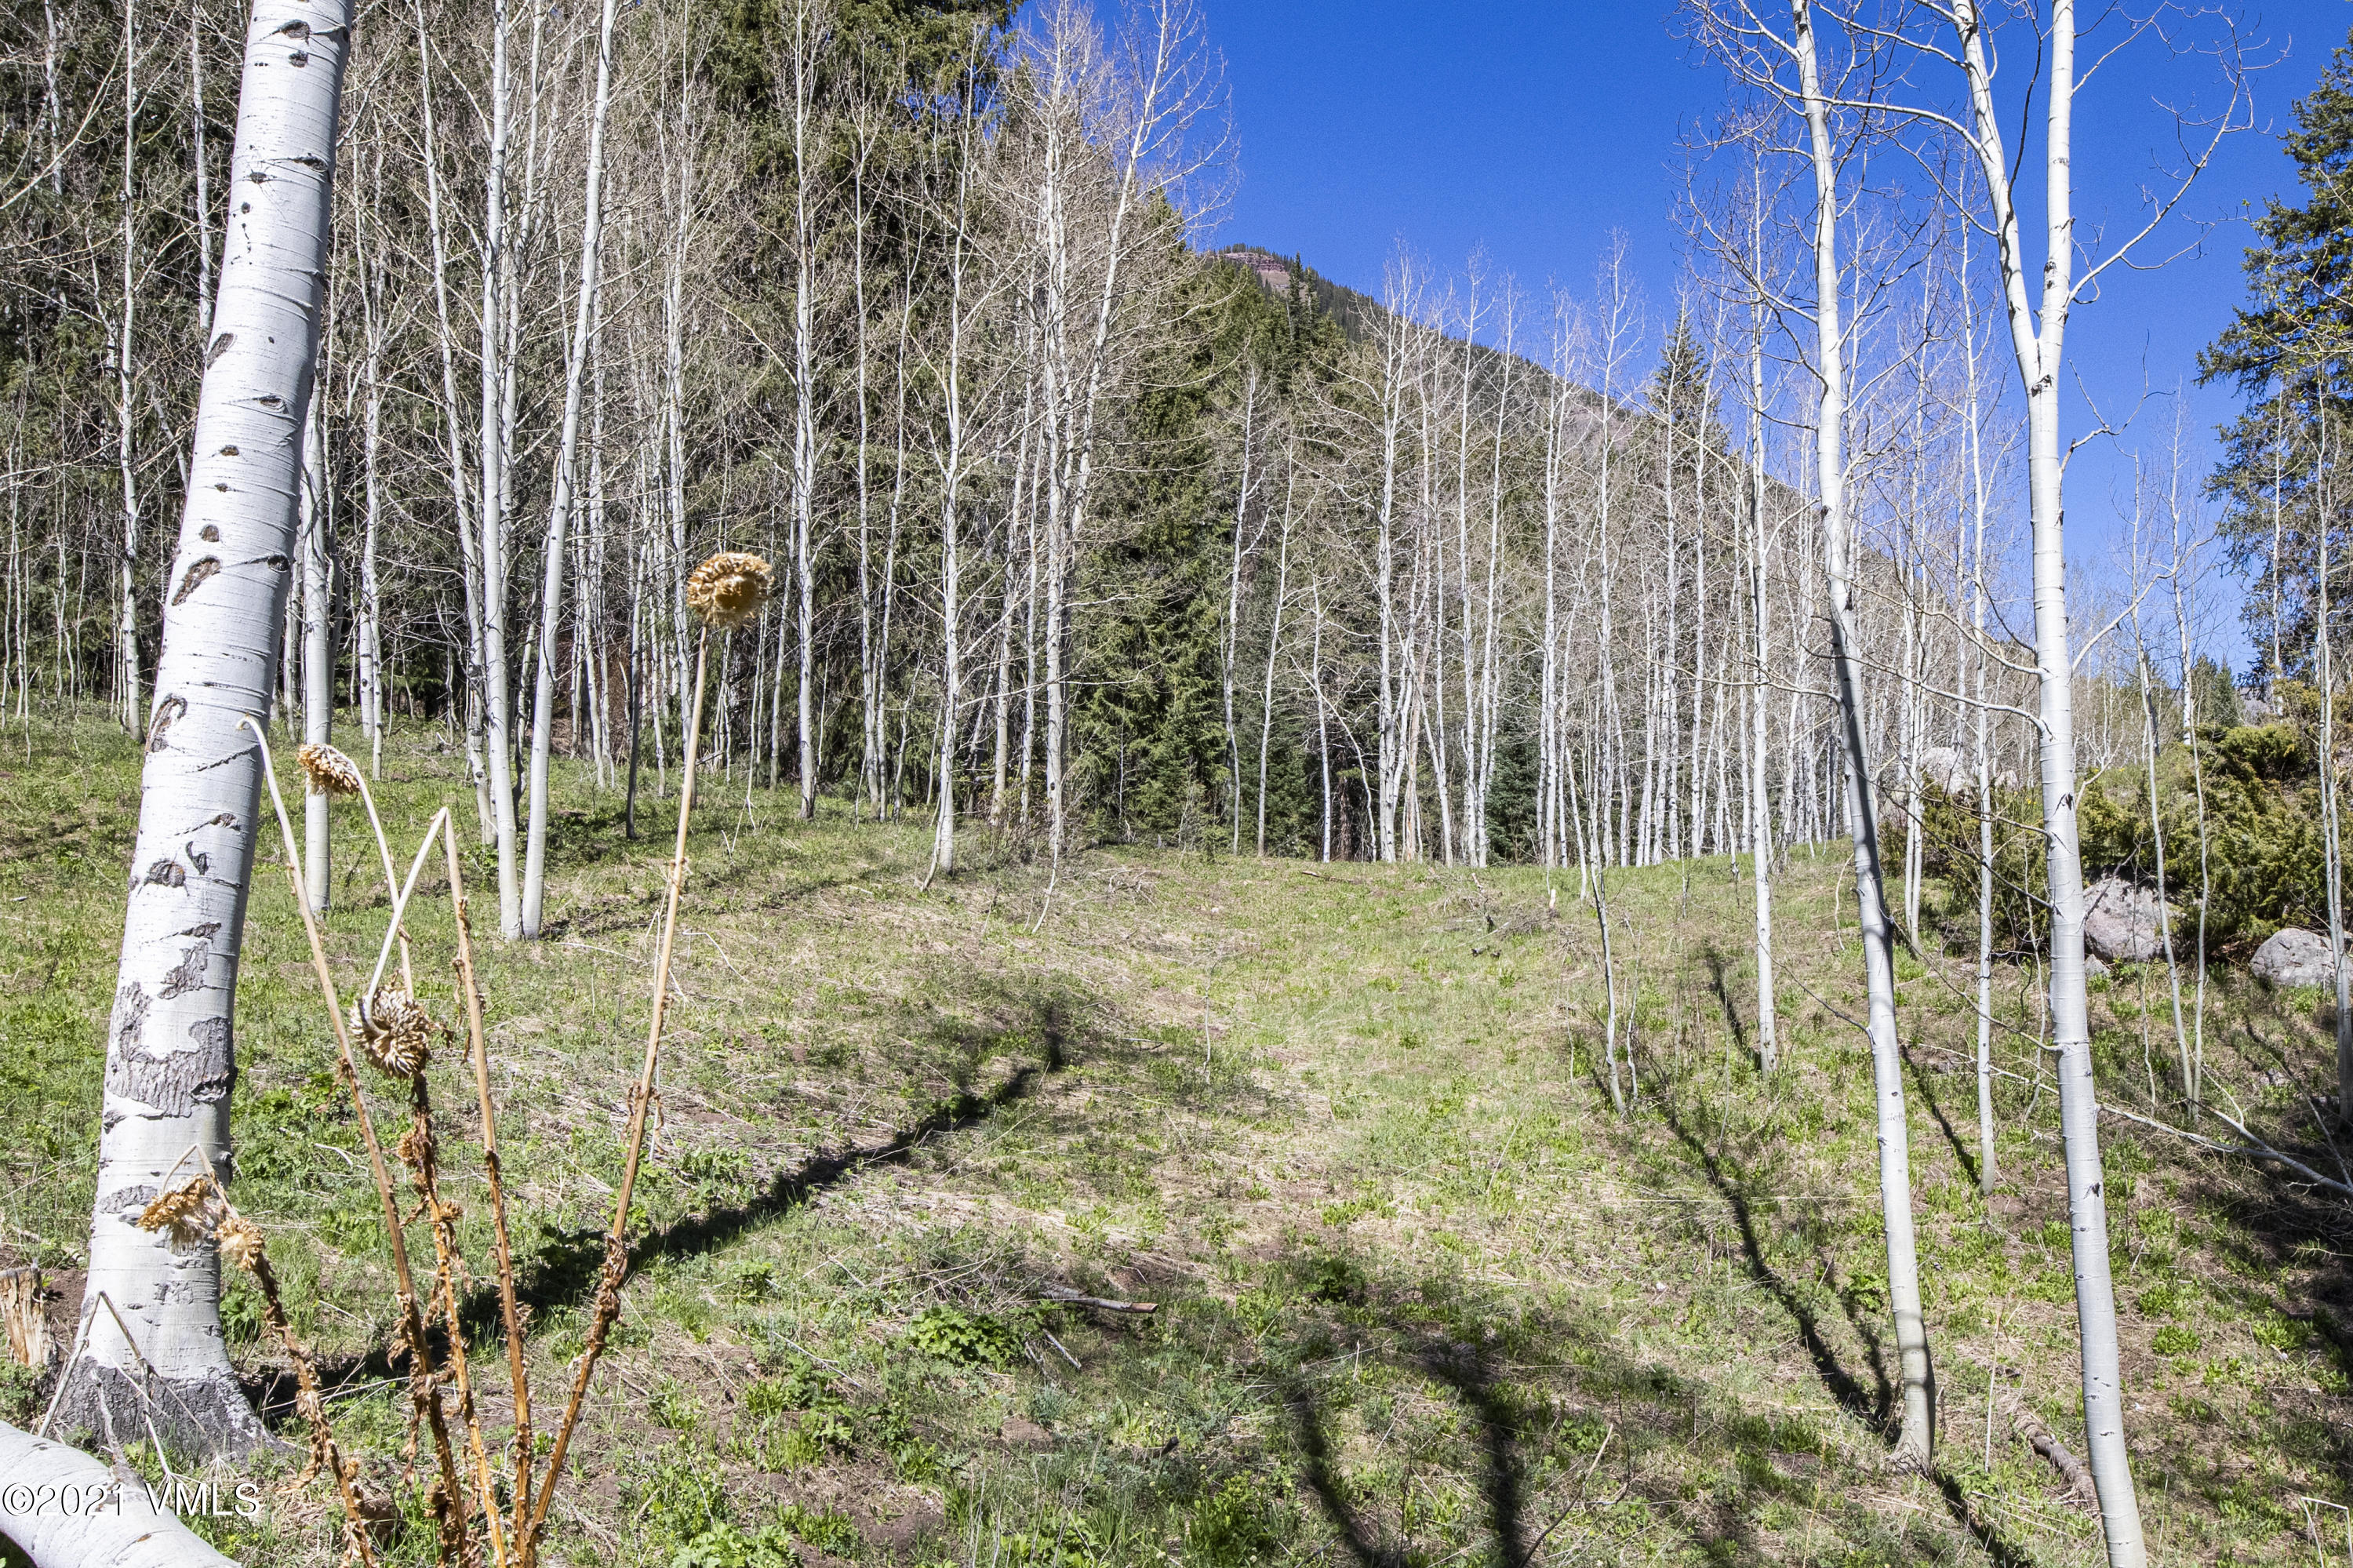 This is an incredibly prime redevelopment opportunity for someone to build on one of the best homesites in East Vail.  Backing up to national forest and with gorgeous views, including of Bald Mountain, this primary-secondary duplex site currently has a 3,000 square foot home with a separate 2-car garage and is being sold as a ''tear down'' given the condition and size.  This land is zoned for a primary-secondary duplex or a single family home.  You would need an architect to design and determine the exact square footage that can be built but between 9,000 and 10,000 square feet is a reasonable estimate based upon similar sized lots with this zoning.  Obviously something much smaller may be desirable depending upon the buyer and if it is a single family or a duplex.Enjoy visitors from your neighbors living on the White River National Forest: deer, elk and fox to name a few.  In the winter, there is a short walk to the Town of Vail free bus stop to take you into Vail Village.  If you are a backcountry enthusiast, you can ski right to your cul-du-sac via the East Vail chutes and come out at the water tower.  East Vail is magical in the summer and fall, with incredible hiking, biking, fly fishing, golf, and rafting.  Head into Vail Village for various festivals and events or to take in a concert at the Ford Amphitheater.  Enjoy dining and shopping with the family in Vail Village or even enjoy a nearby dinner at Heirloom Restaurant & Bar, located in the heart of East Vail at the Vail Racquet Club.  Get an affordable membership to the Vail Racquet Club for working out, swimming, hot tubs and tennis.  East Vail is a beautiful area and is well known for the big impact of it's steep mountains, waterfalls and the Gore Creek that winds through the area.  Bighorn Park is the neighborhood's meeting place with its playground, off-leash dog park, picnic tables, open field and pond. Bikers can begin their day by riding up Vail Pass, and hikers... have a choice of terrific hiking tr